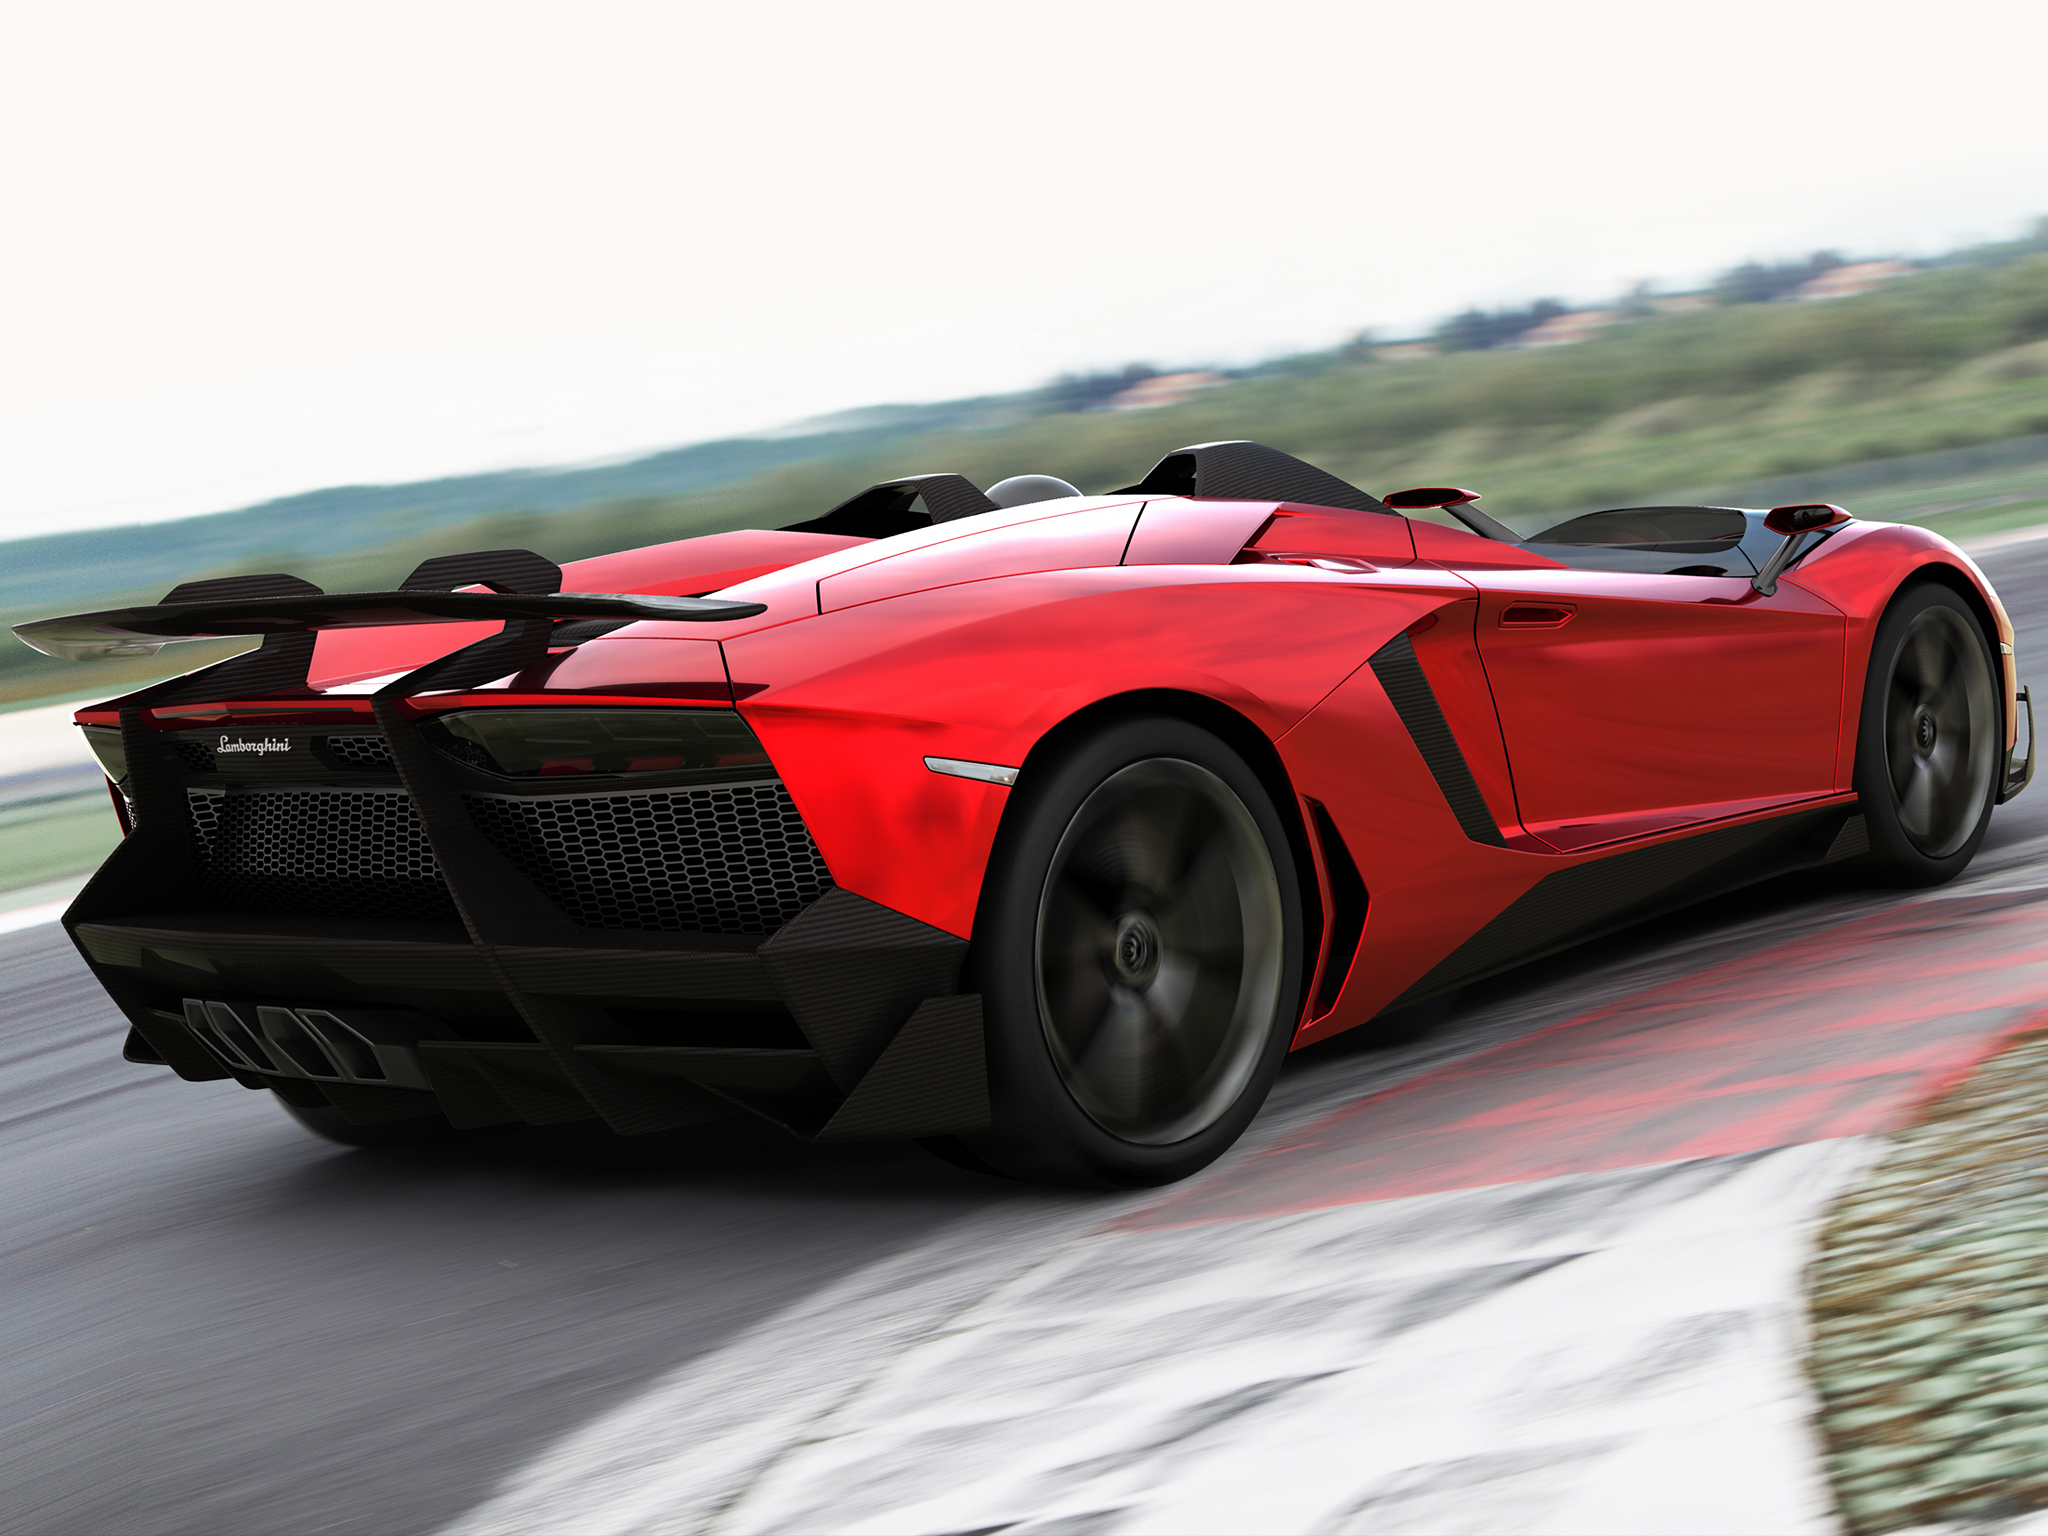 Lamborghini Aventador J 2012 Computer Wallpapers Desktop Backgrounds 2048x1536